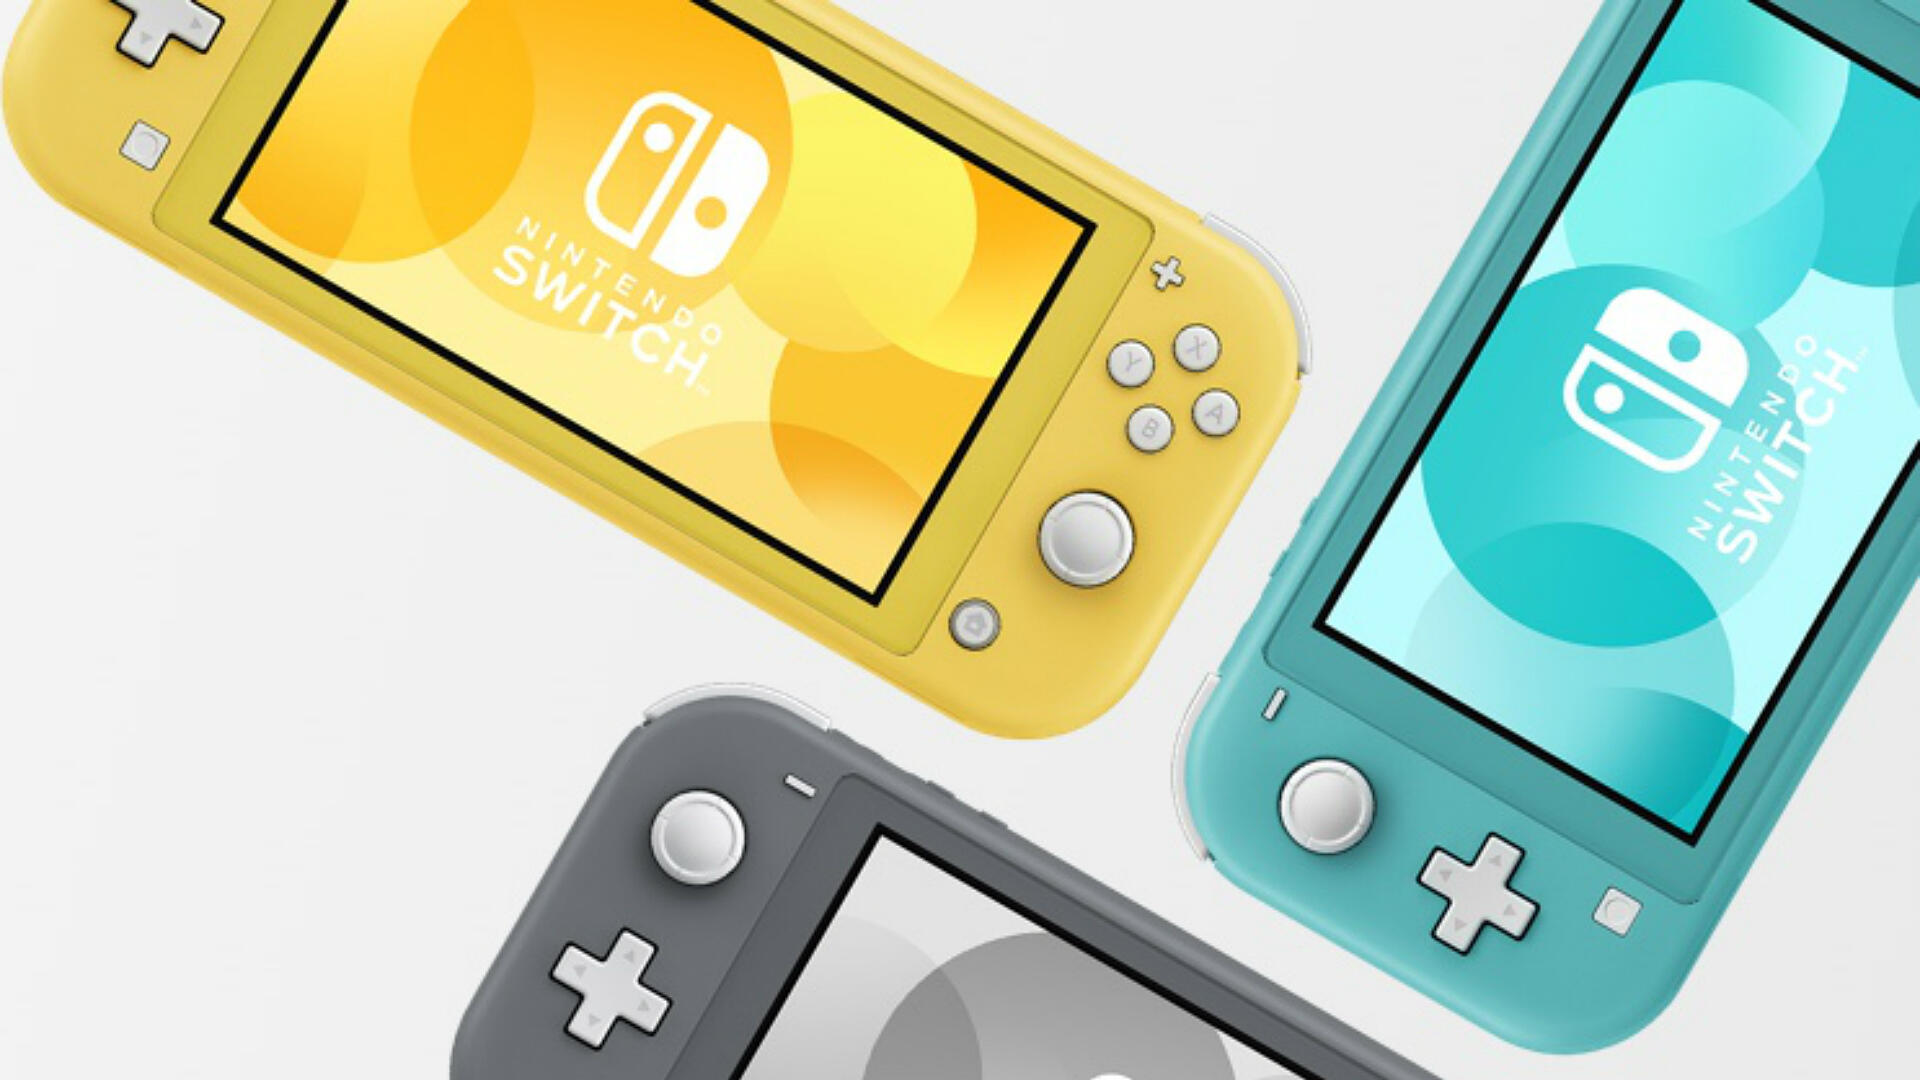 Nintendo Switch Lite Sold Close to 2 Million Units in Less Than 2 Weeks